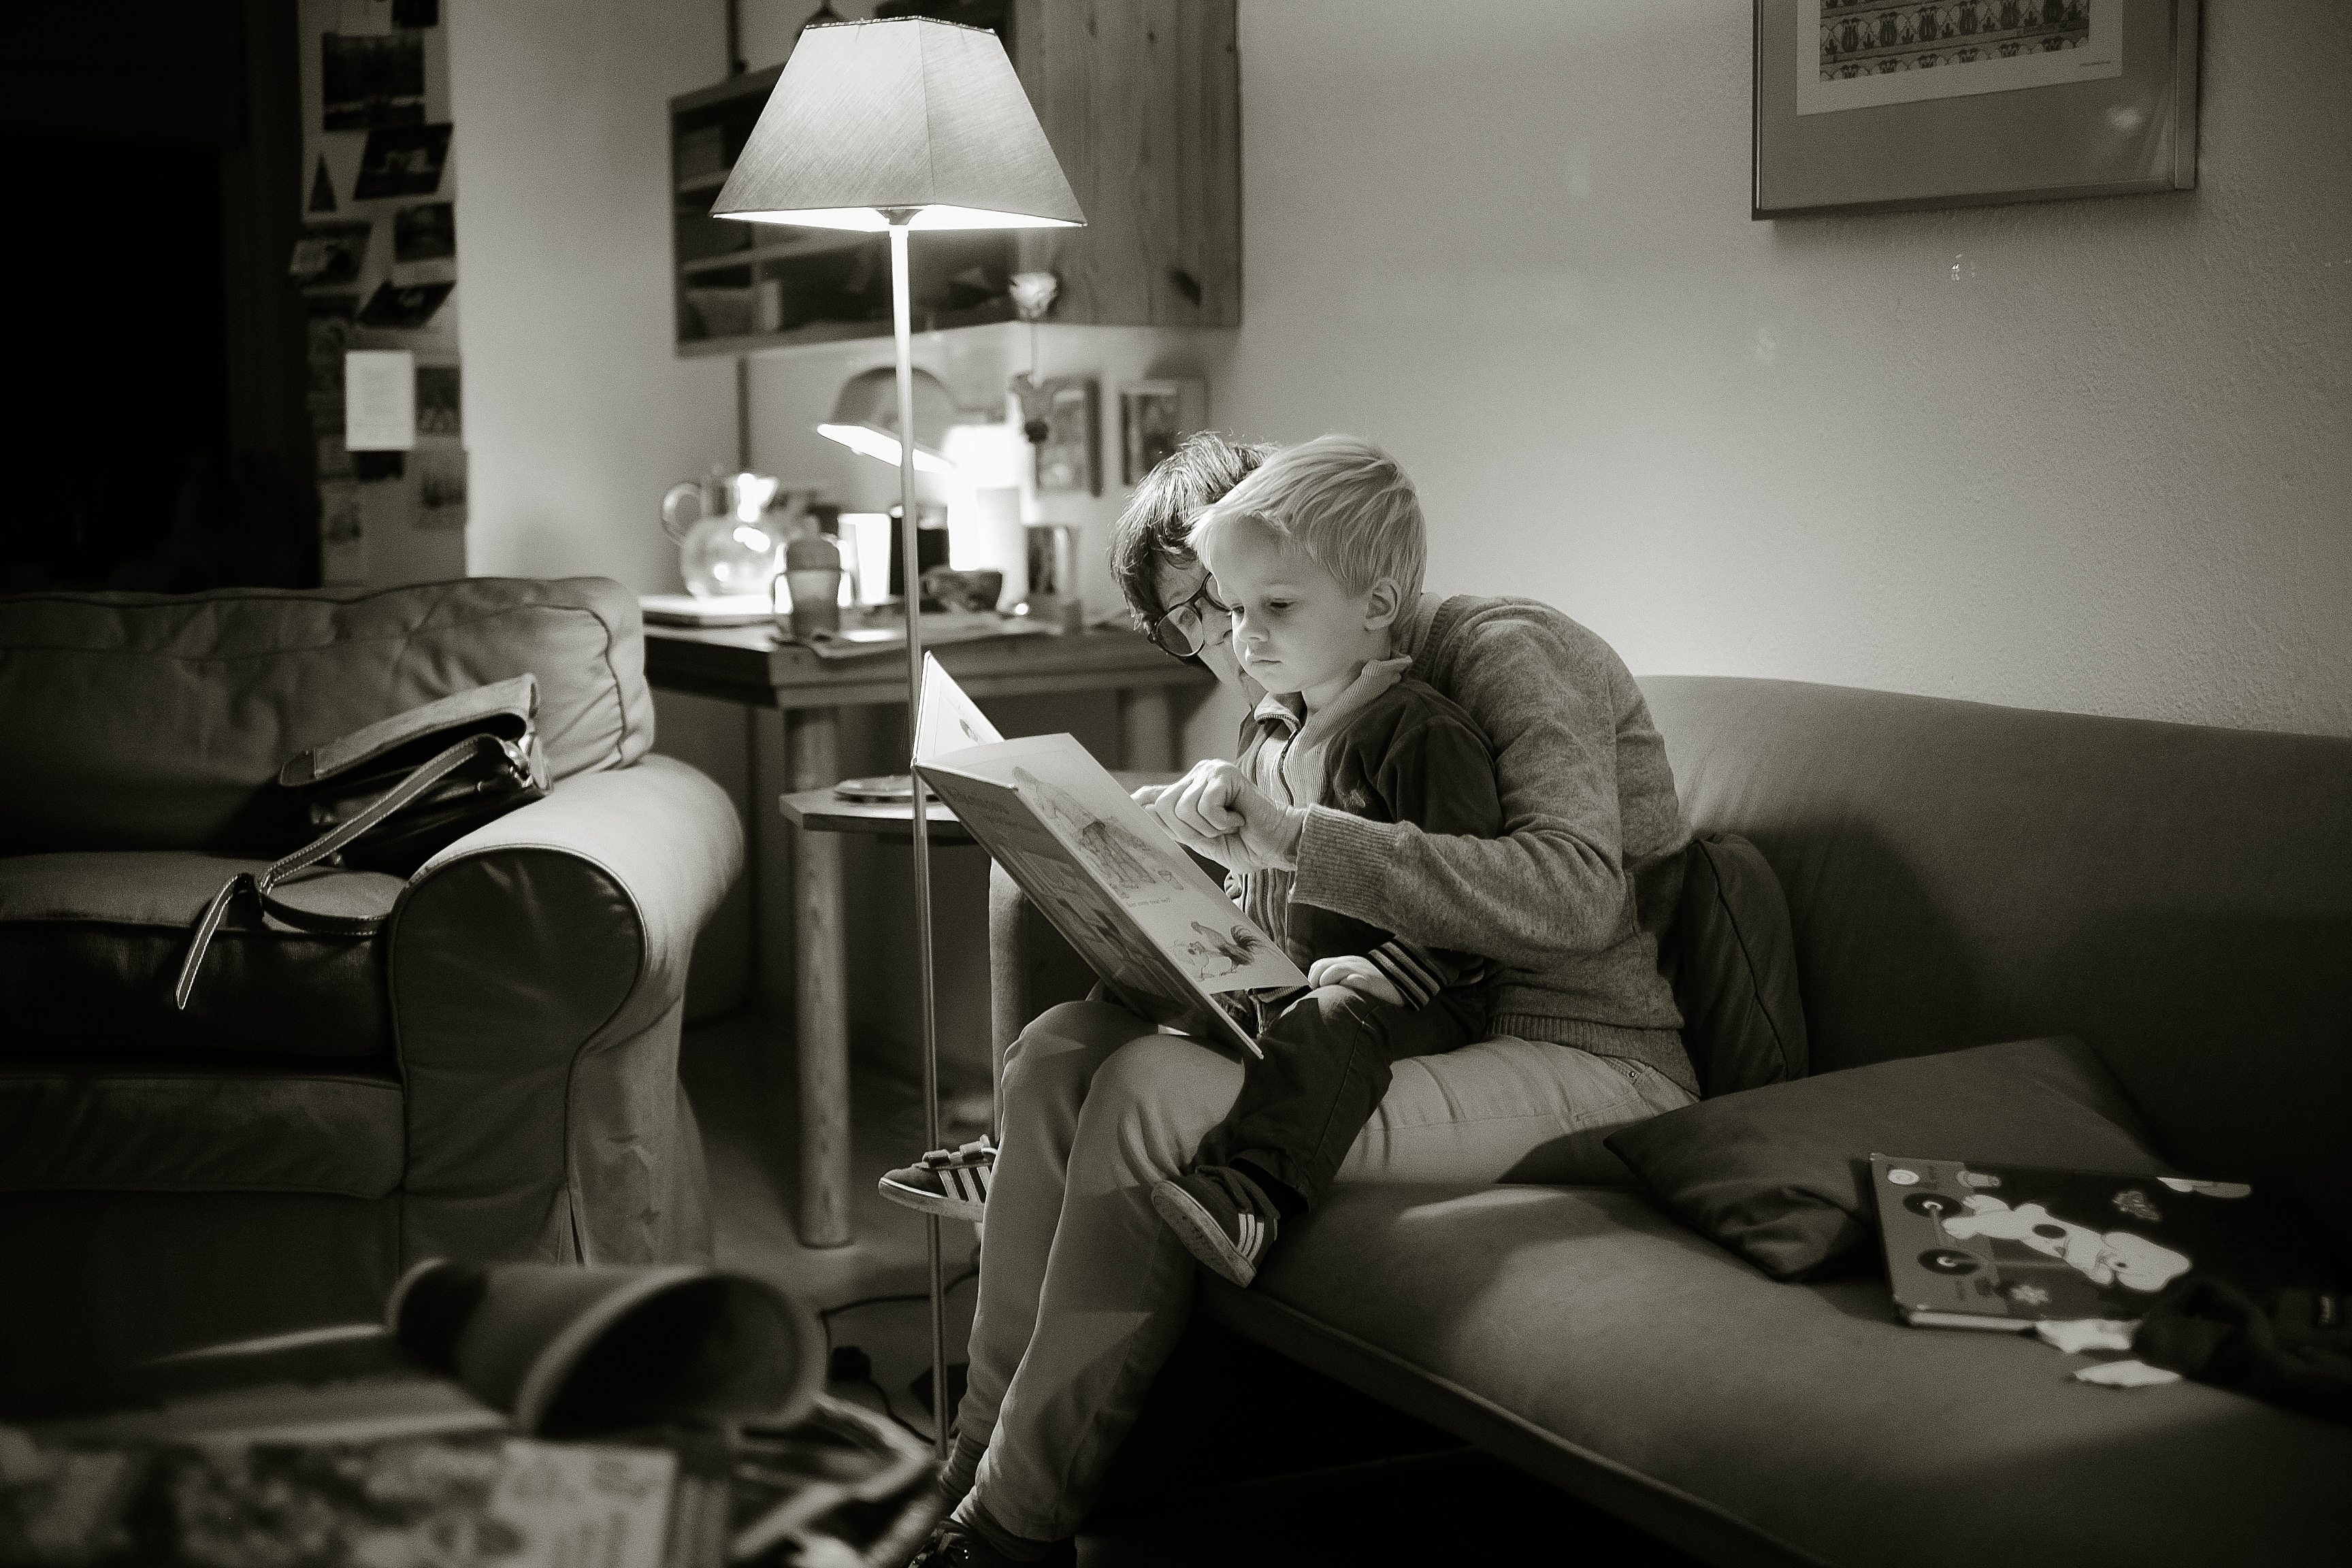 adult and child sat on a sofa reading in a black and white image